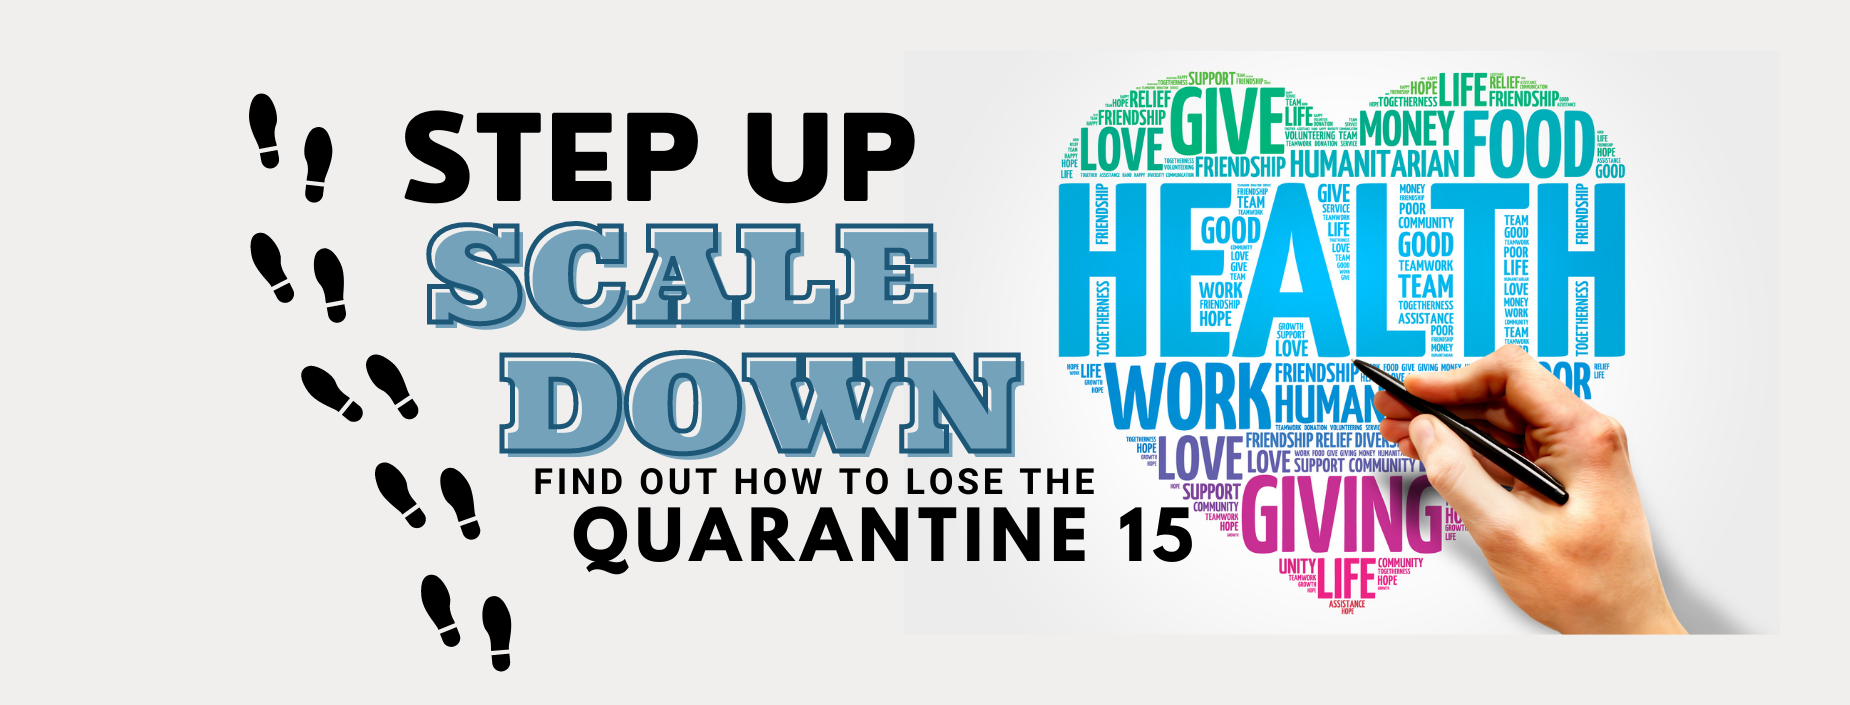 Step Up, Scale Down Lose the Quarantine 15